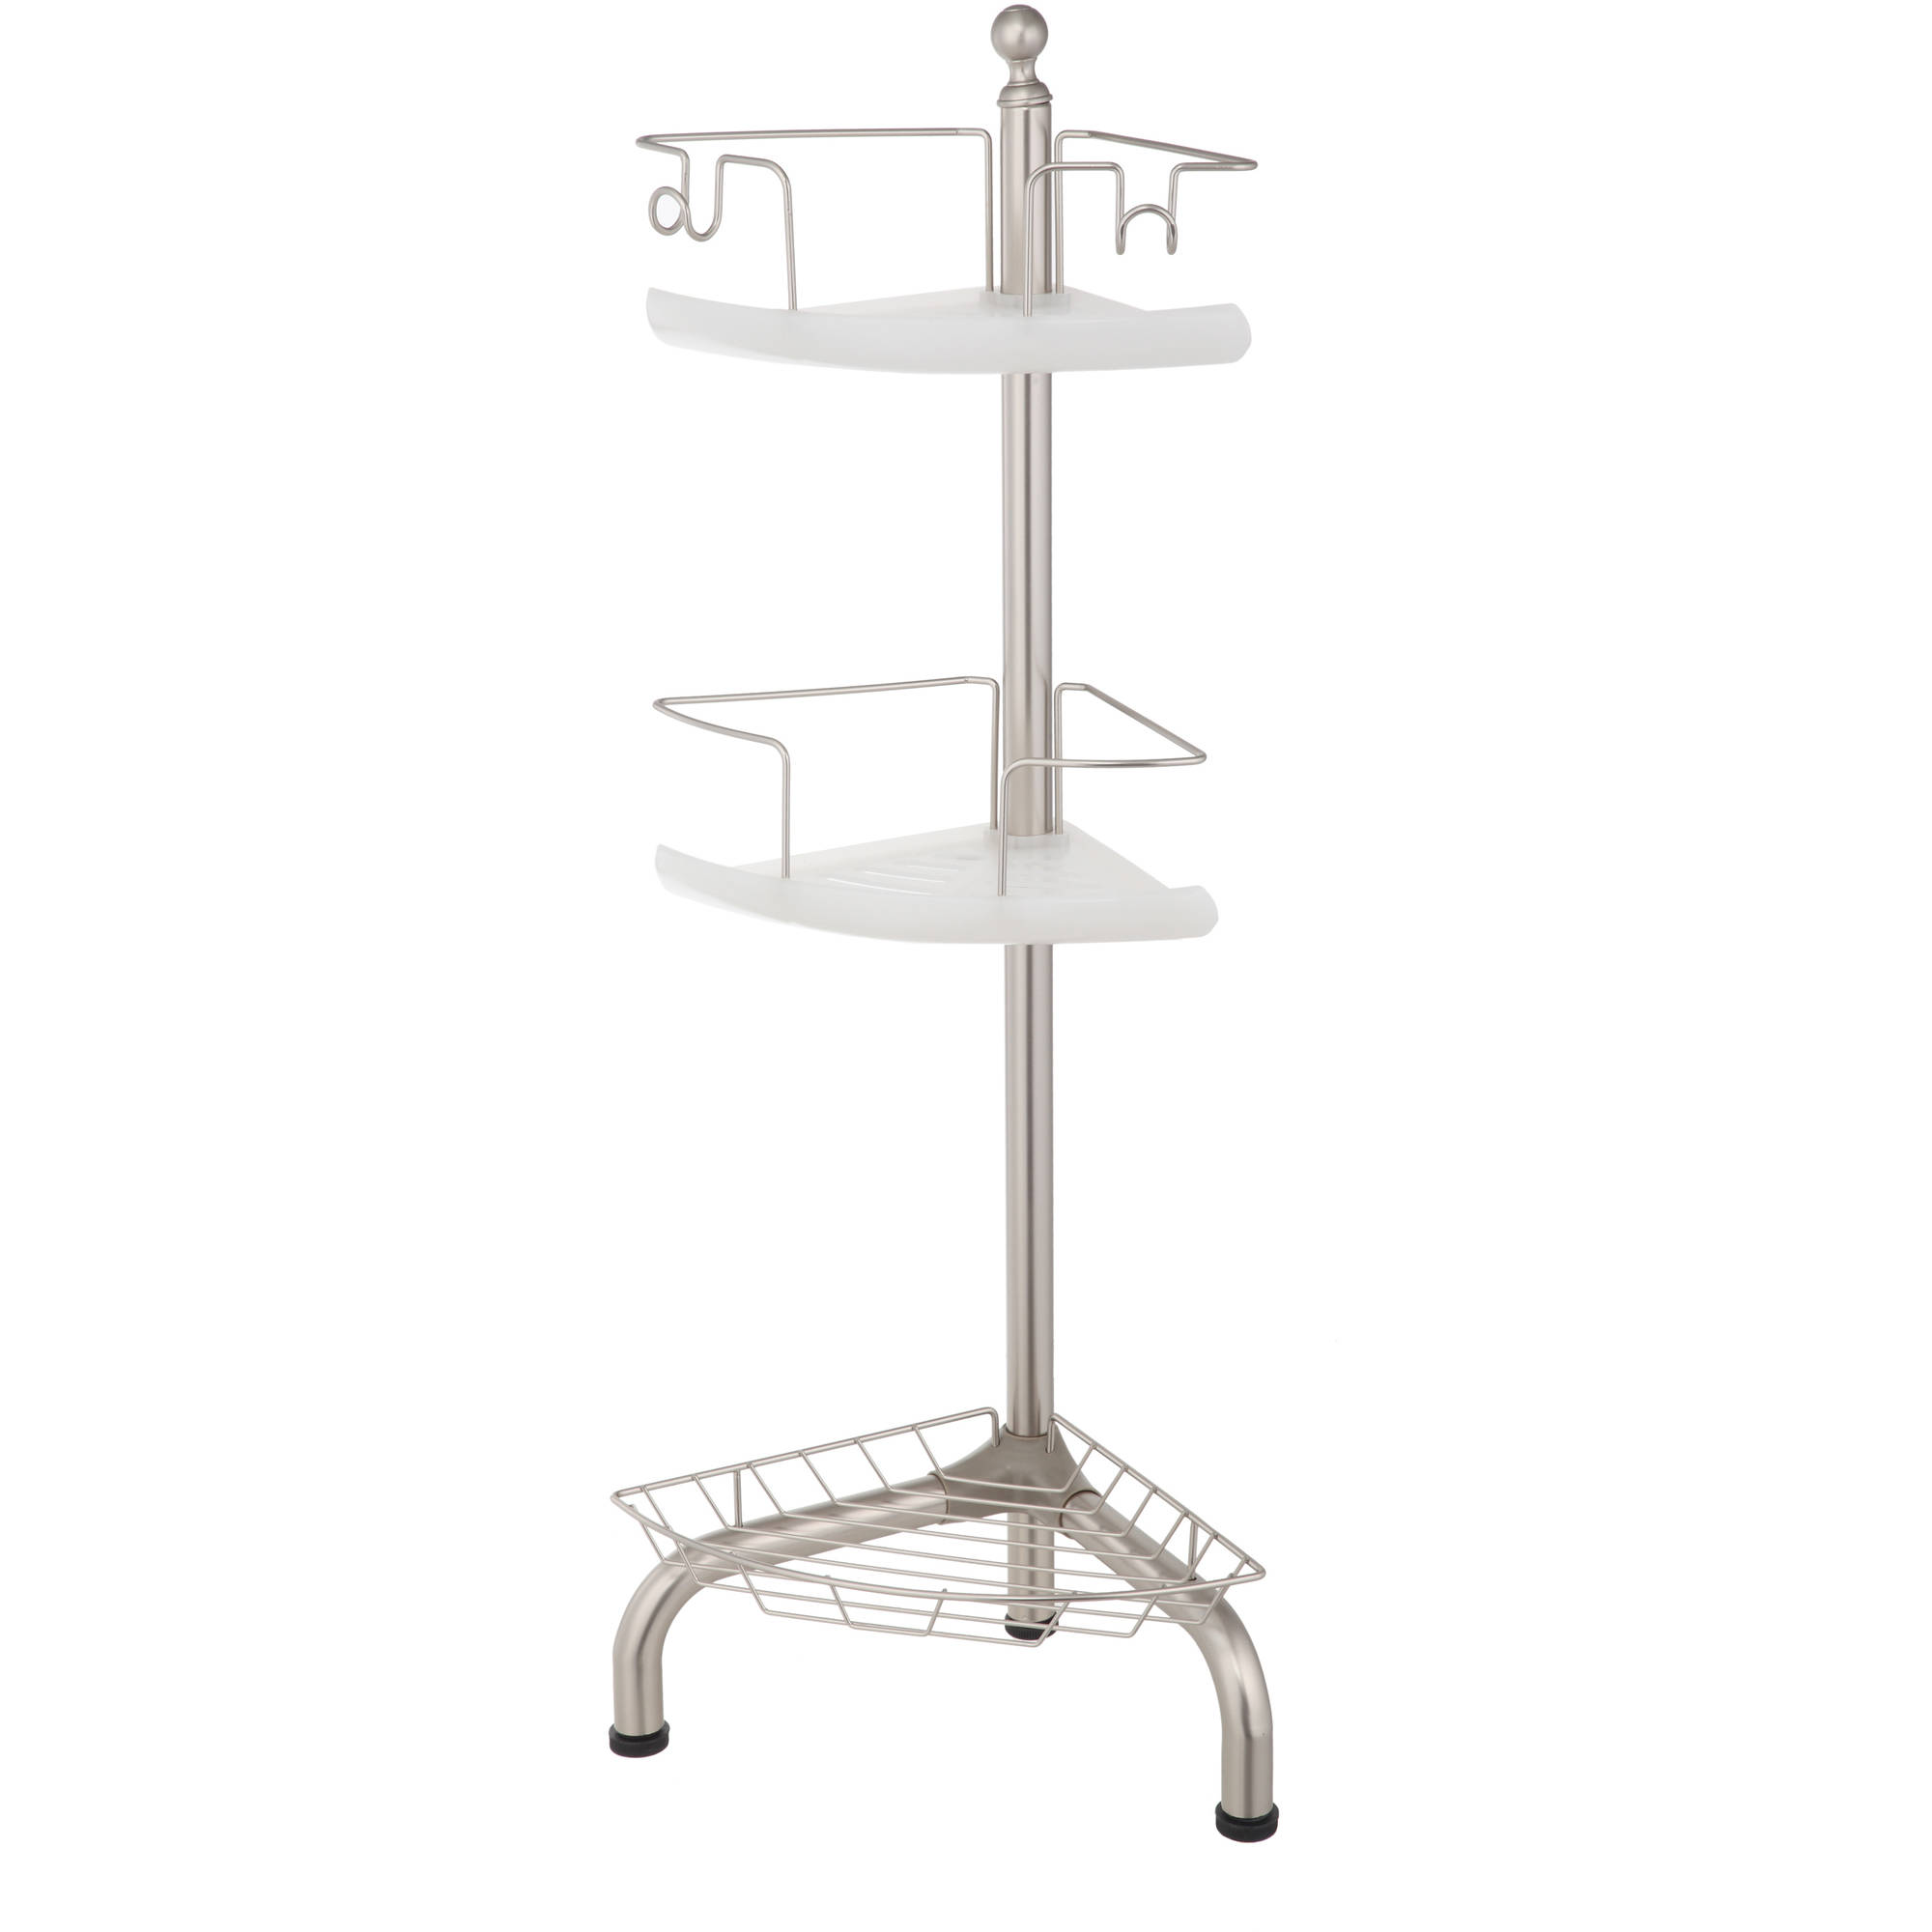 Three Tier Bathroom Stand: Home Bath Decor 3 Tier Corner Shower Bathroom Caddy